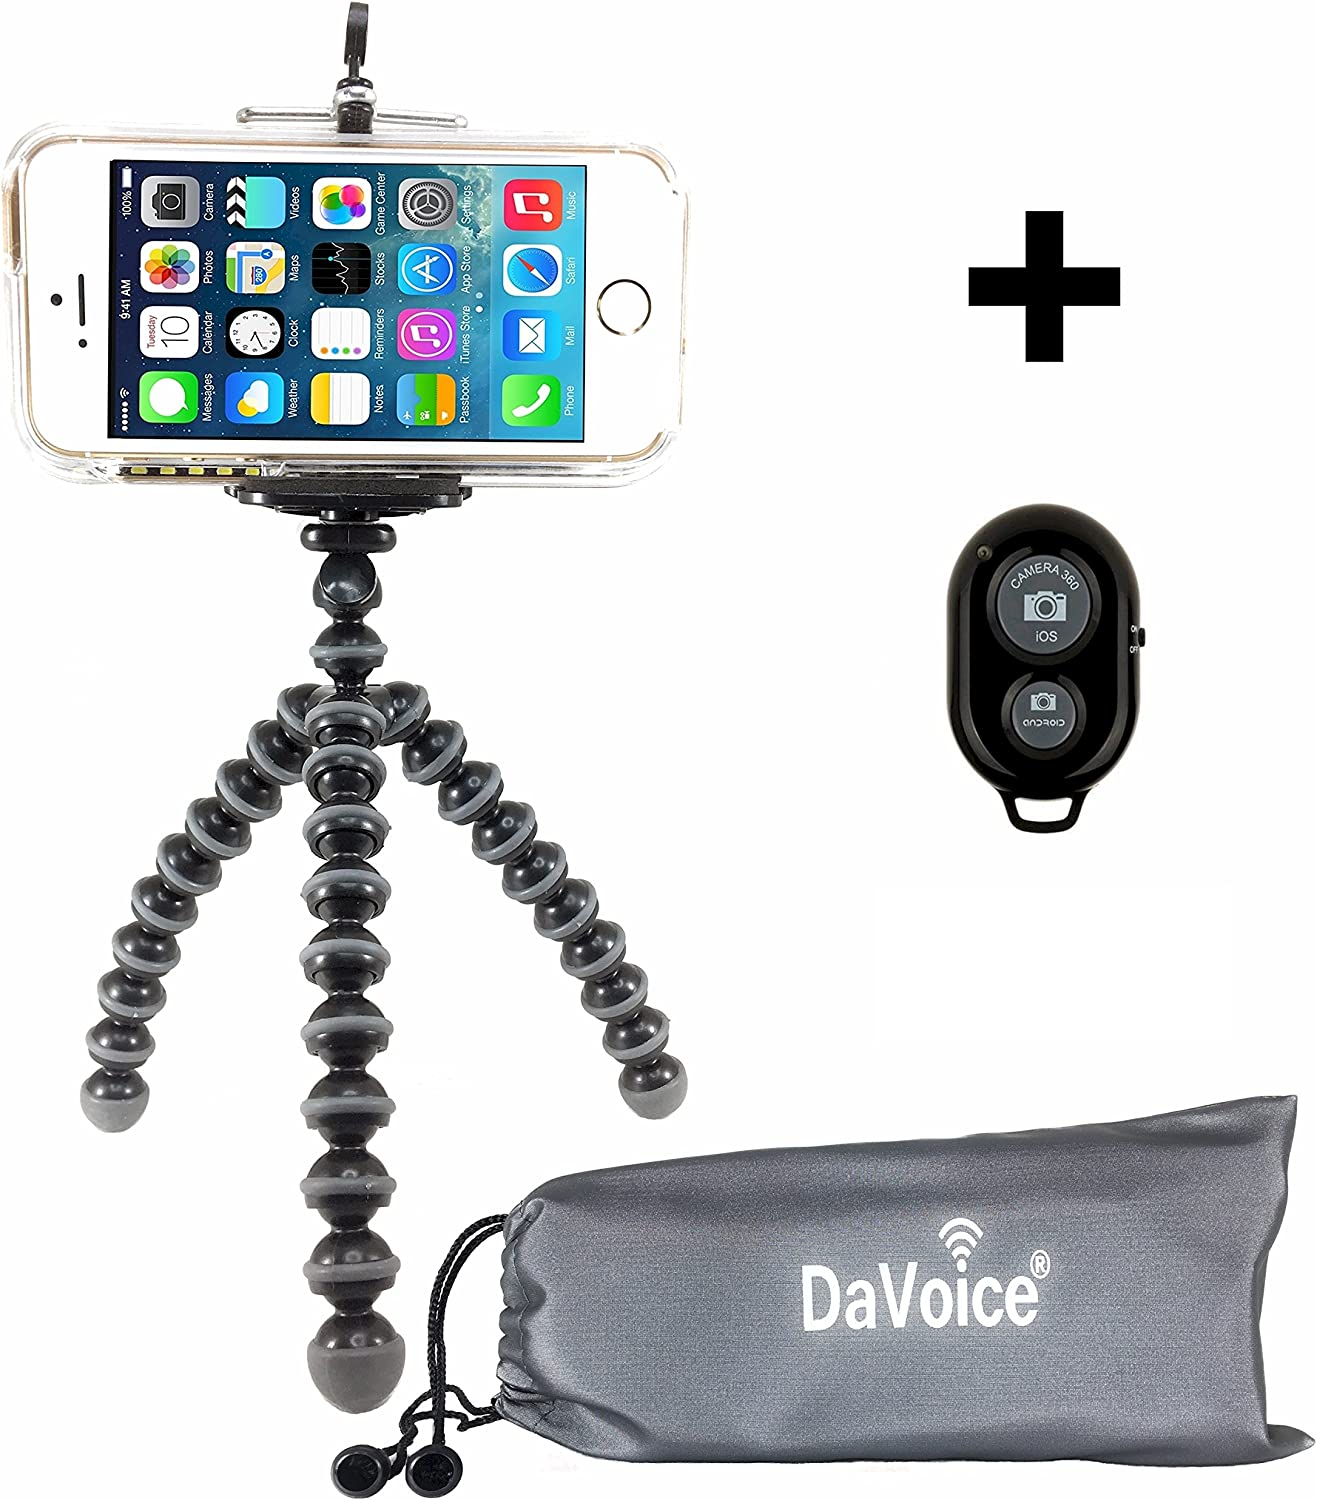 DaVoice Cell Phone Tripod Mount Adapter Holder Bluetooth Remote Control Carry Bag Compatible with iPhone X XS Max XR Se 8 7 6 6s Plus Samsung Galaxy S9 S8 S7 S6 Edge Bracket Attachment Hot Pink